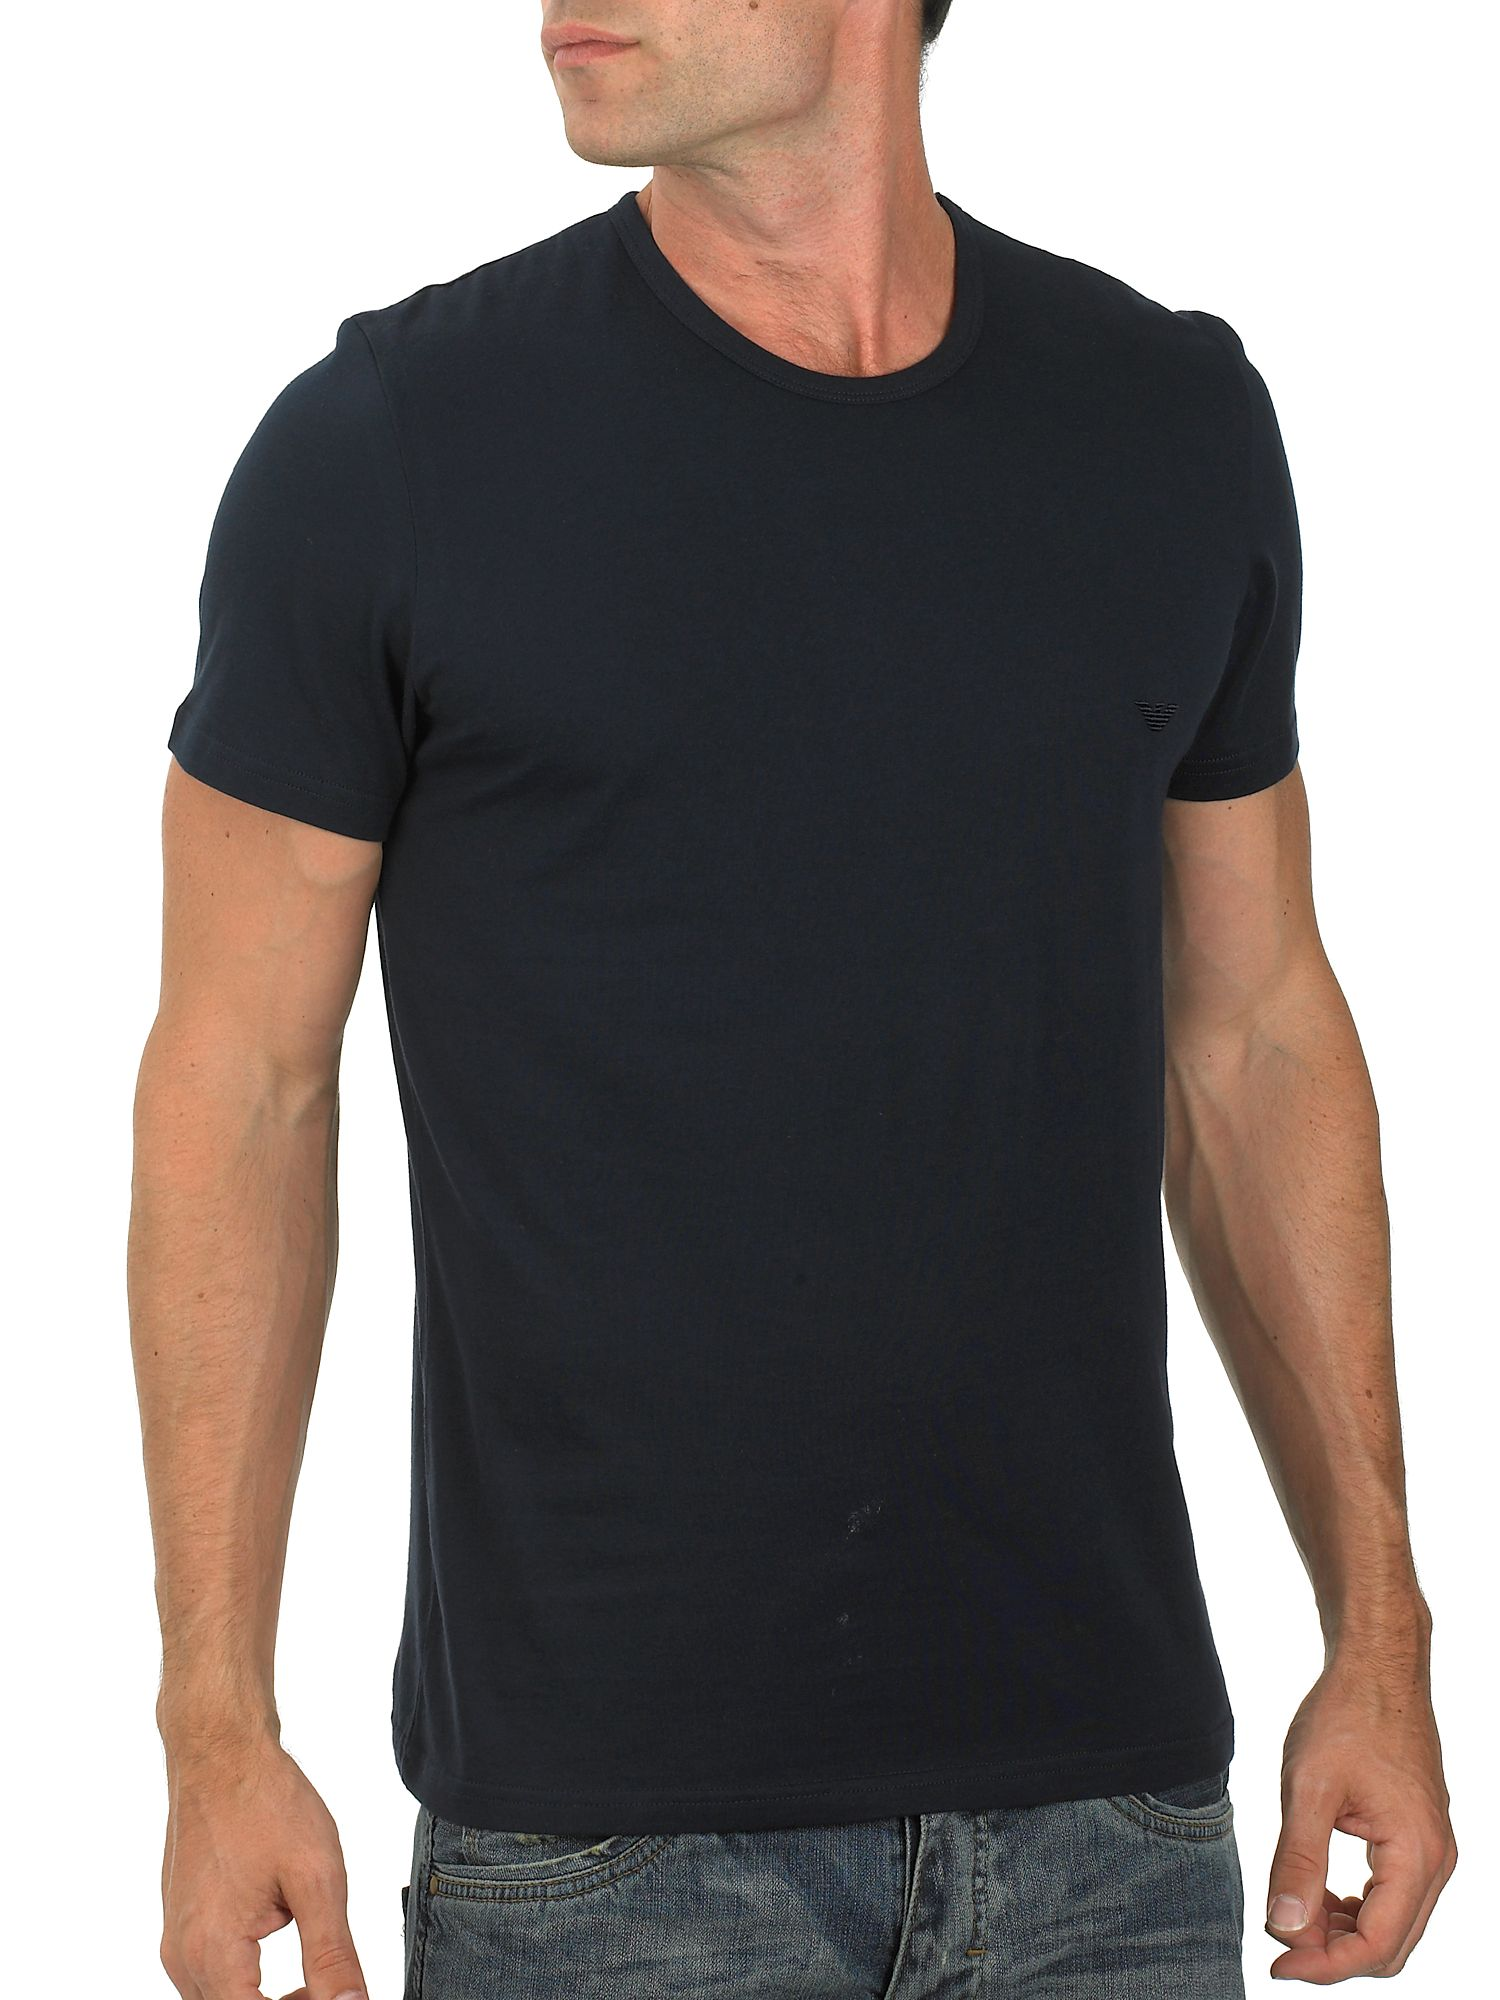 Emporio Armani Short-sleeved crew-neck T-shirt Navy product image